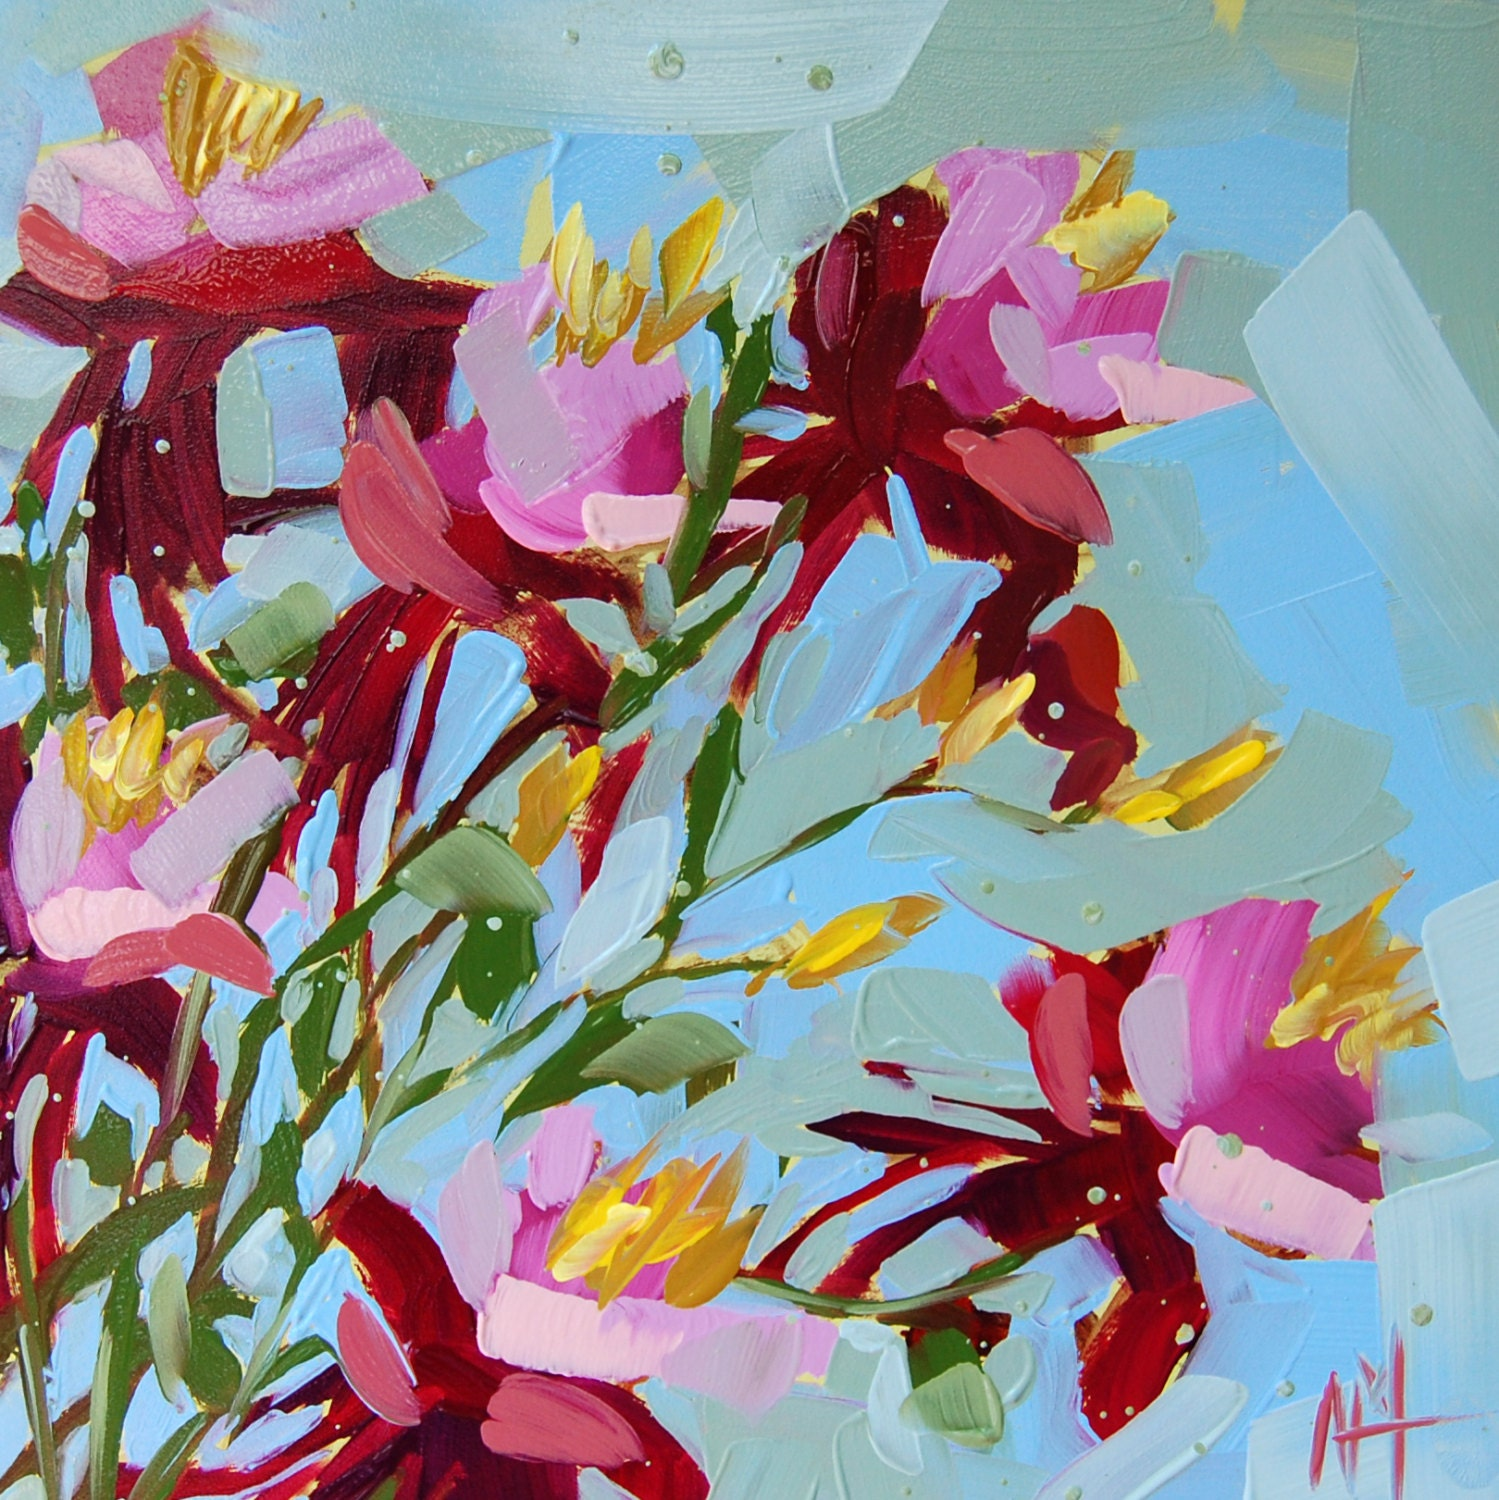 Columbine Floral And Gifts: Columbine Flowers No. 6 Original Floral Oil Painting By Angela